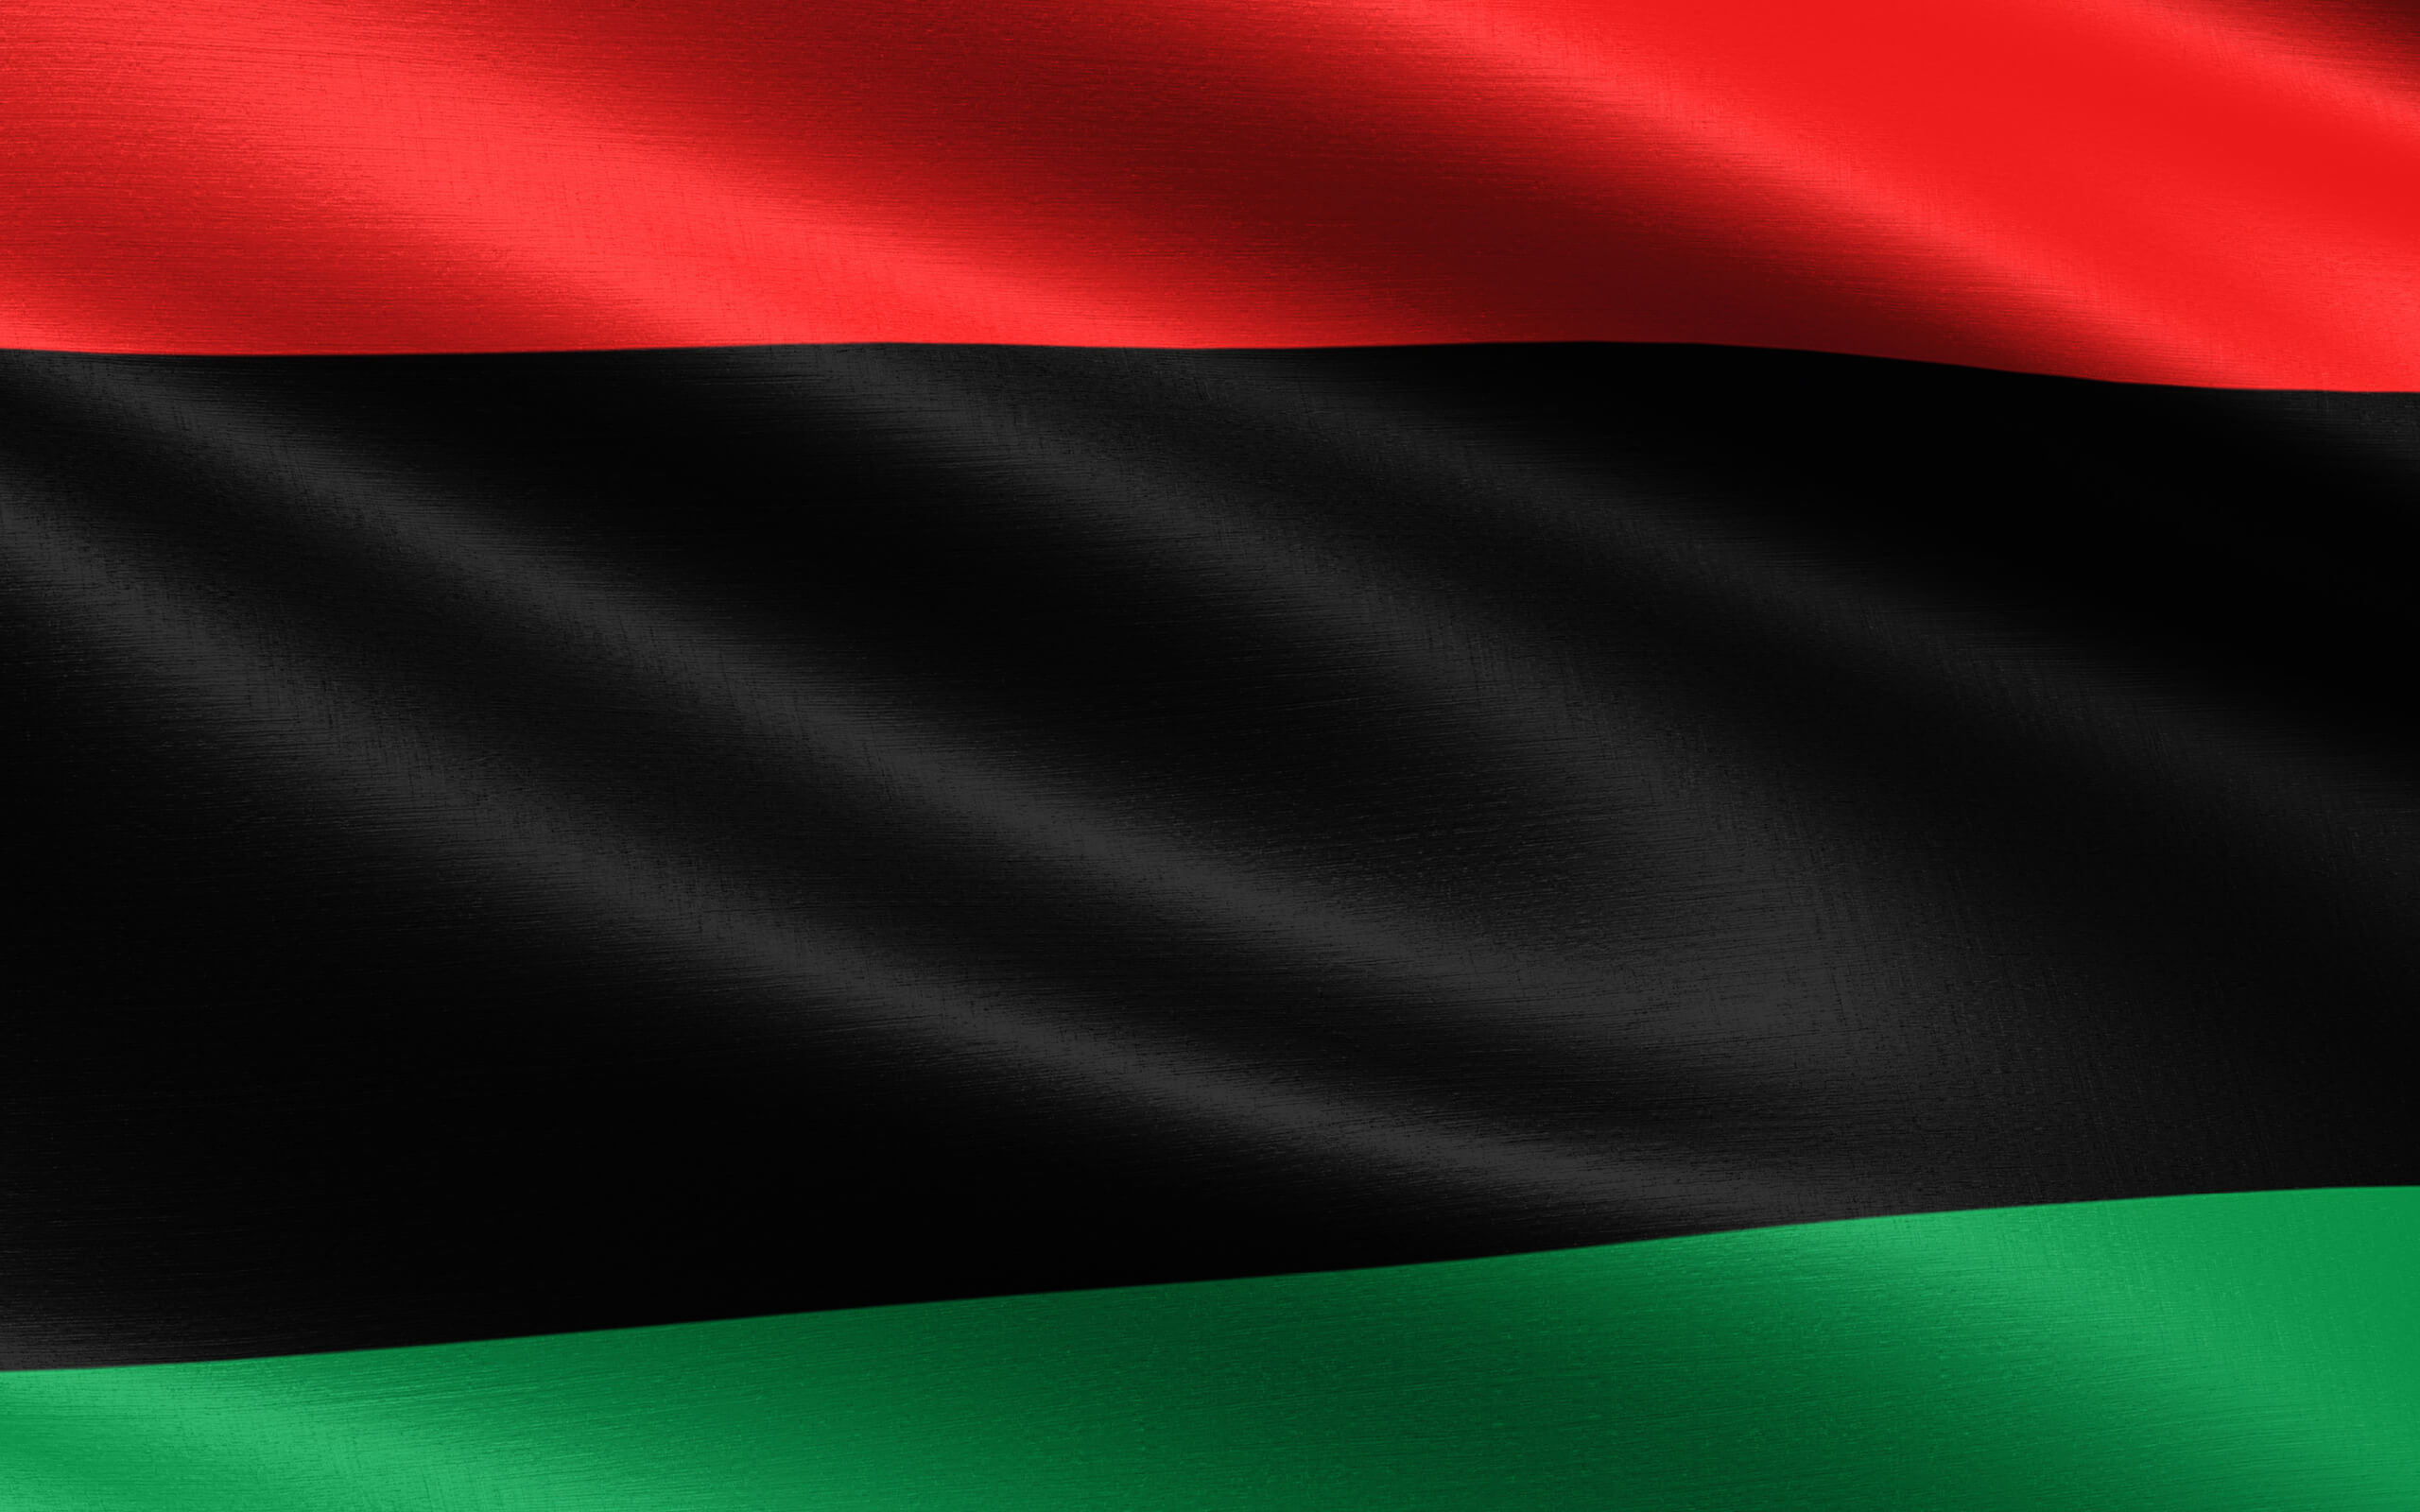 red, black and green black history month flag